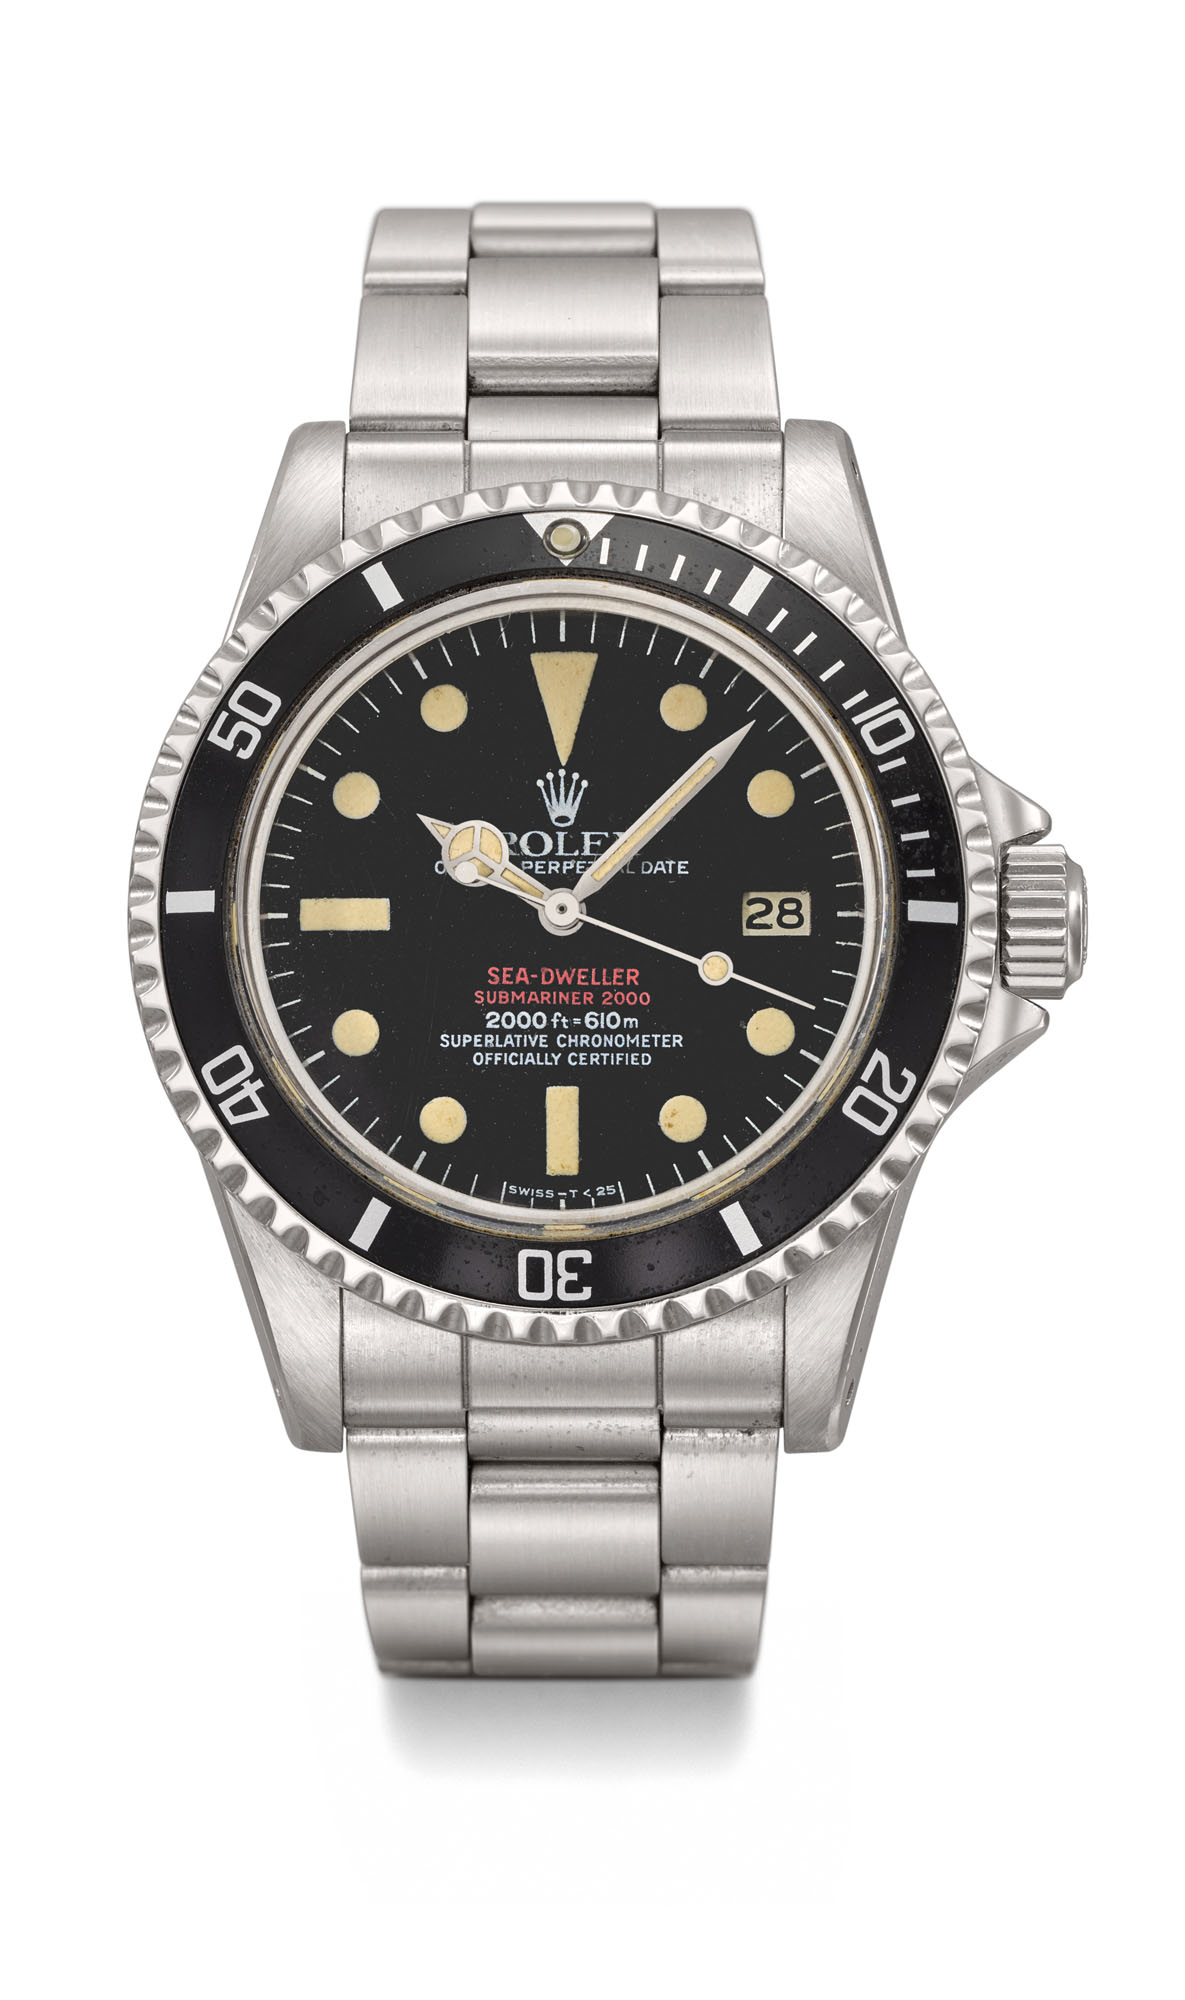 ROLEX. A VERY FINE AND RARE STAINLESS STEEL AUTOMATIC WRISTWATCH WITH SWEEP CENTRE SECONDS, HELIUM GAS ESCAPE VALVE, DATE, BRACELET, ORIGINAL GUARANTEE AND BOX